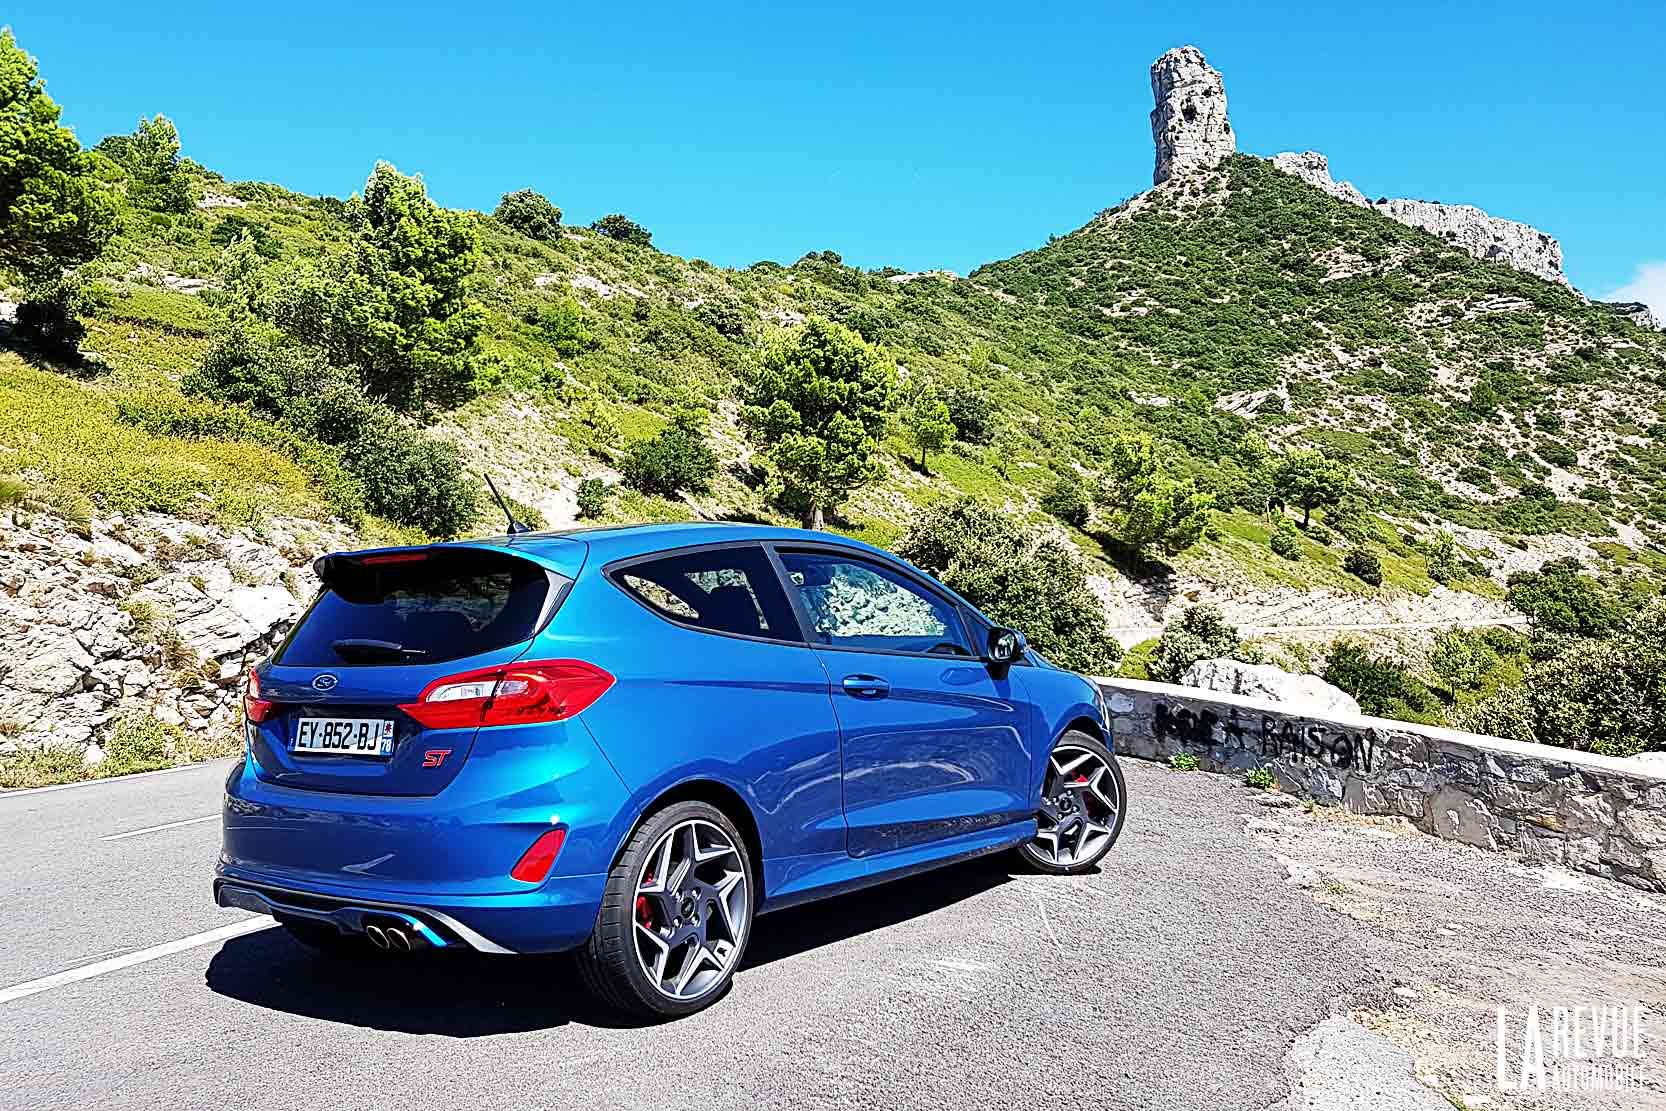 Exterieur_Ford-Fiesta-ST-1.5-Turbo_6